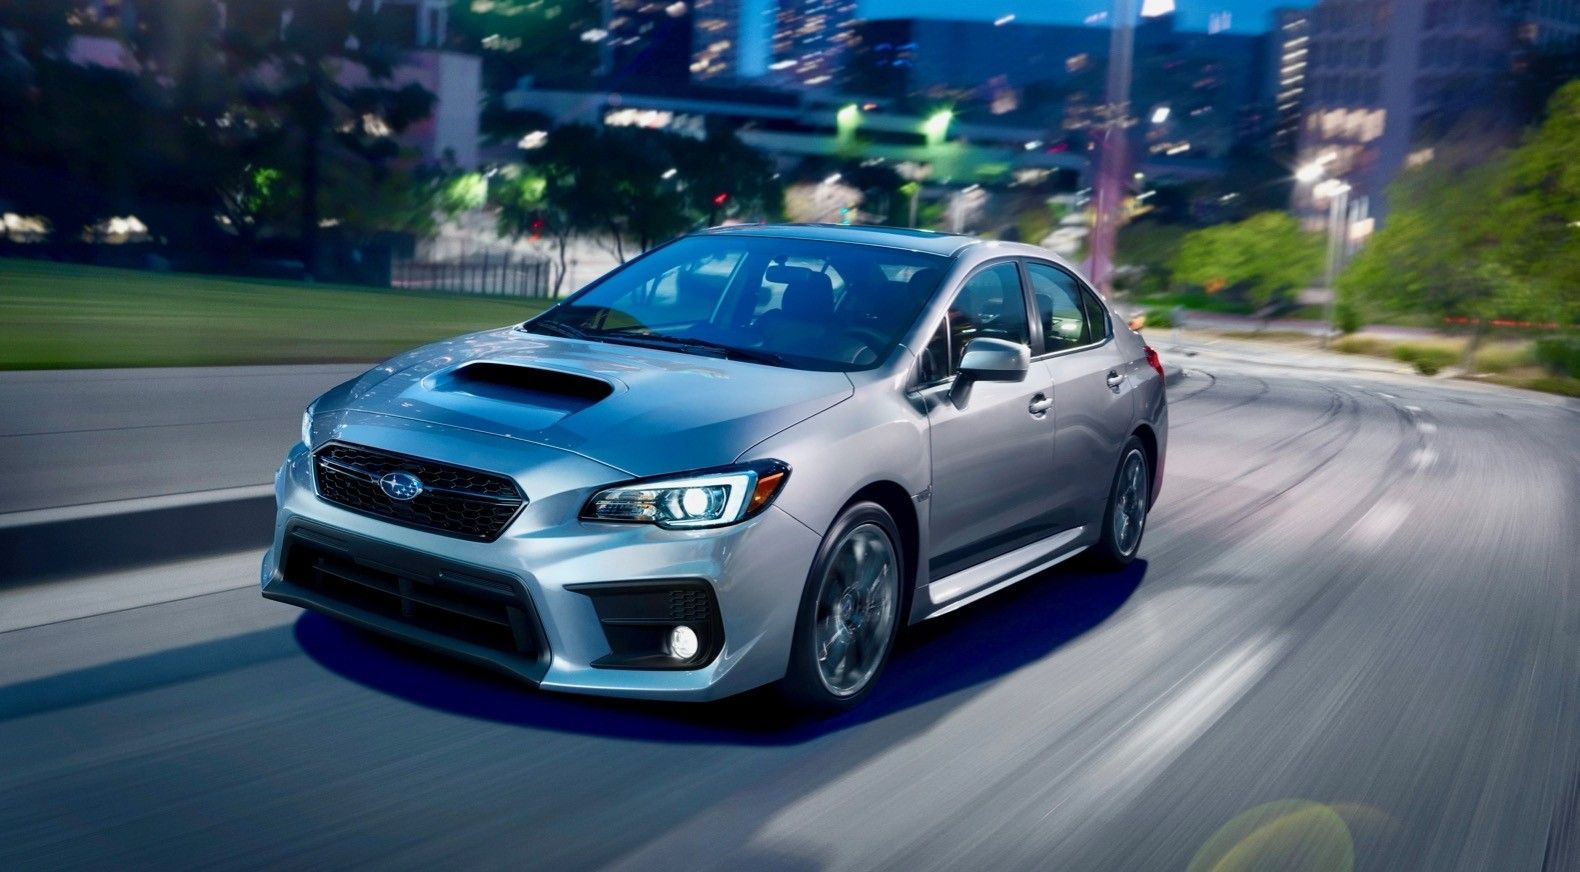 2019 Subaru Wrx Sti Redesign All Car Club Subaru Subaru Wrx